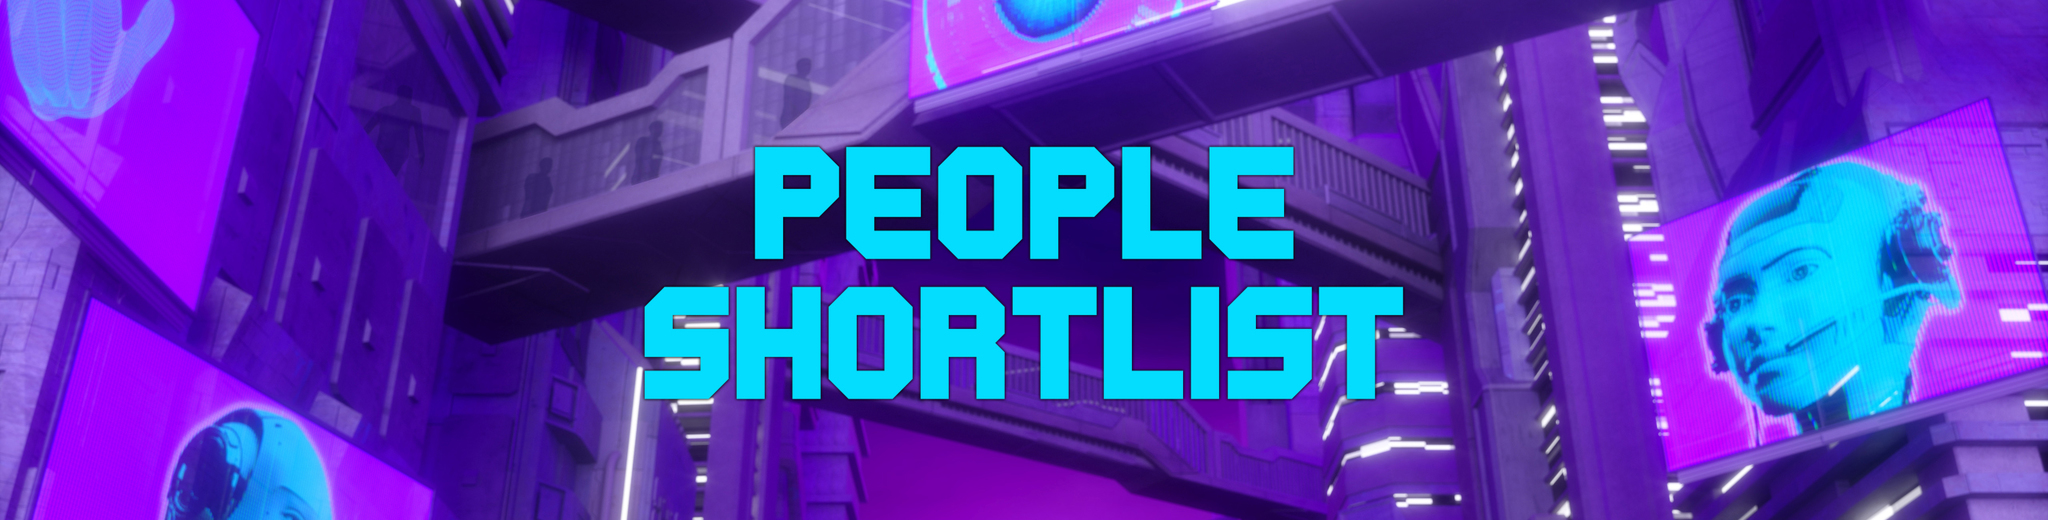 AV Awards header - people shortlist